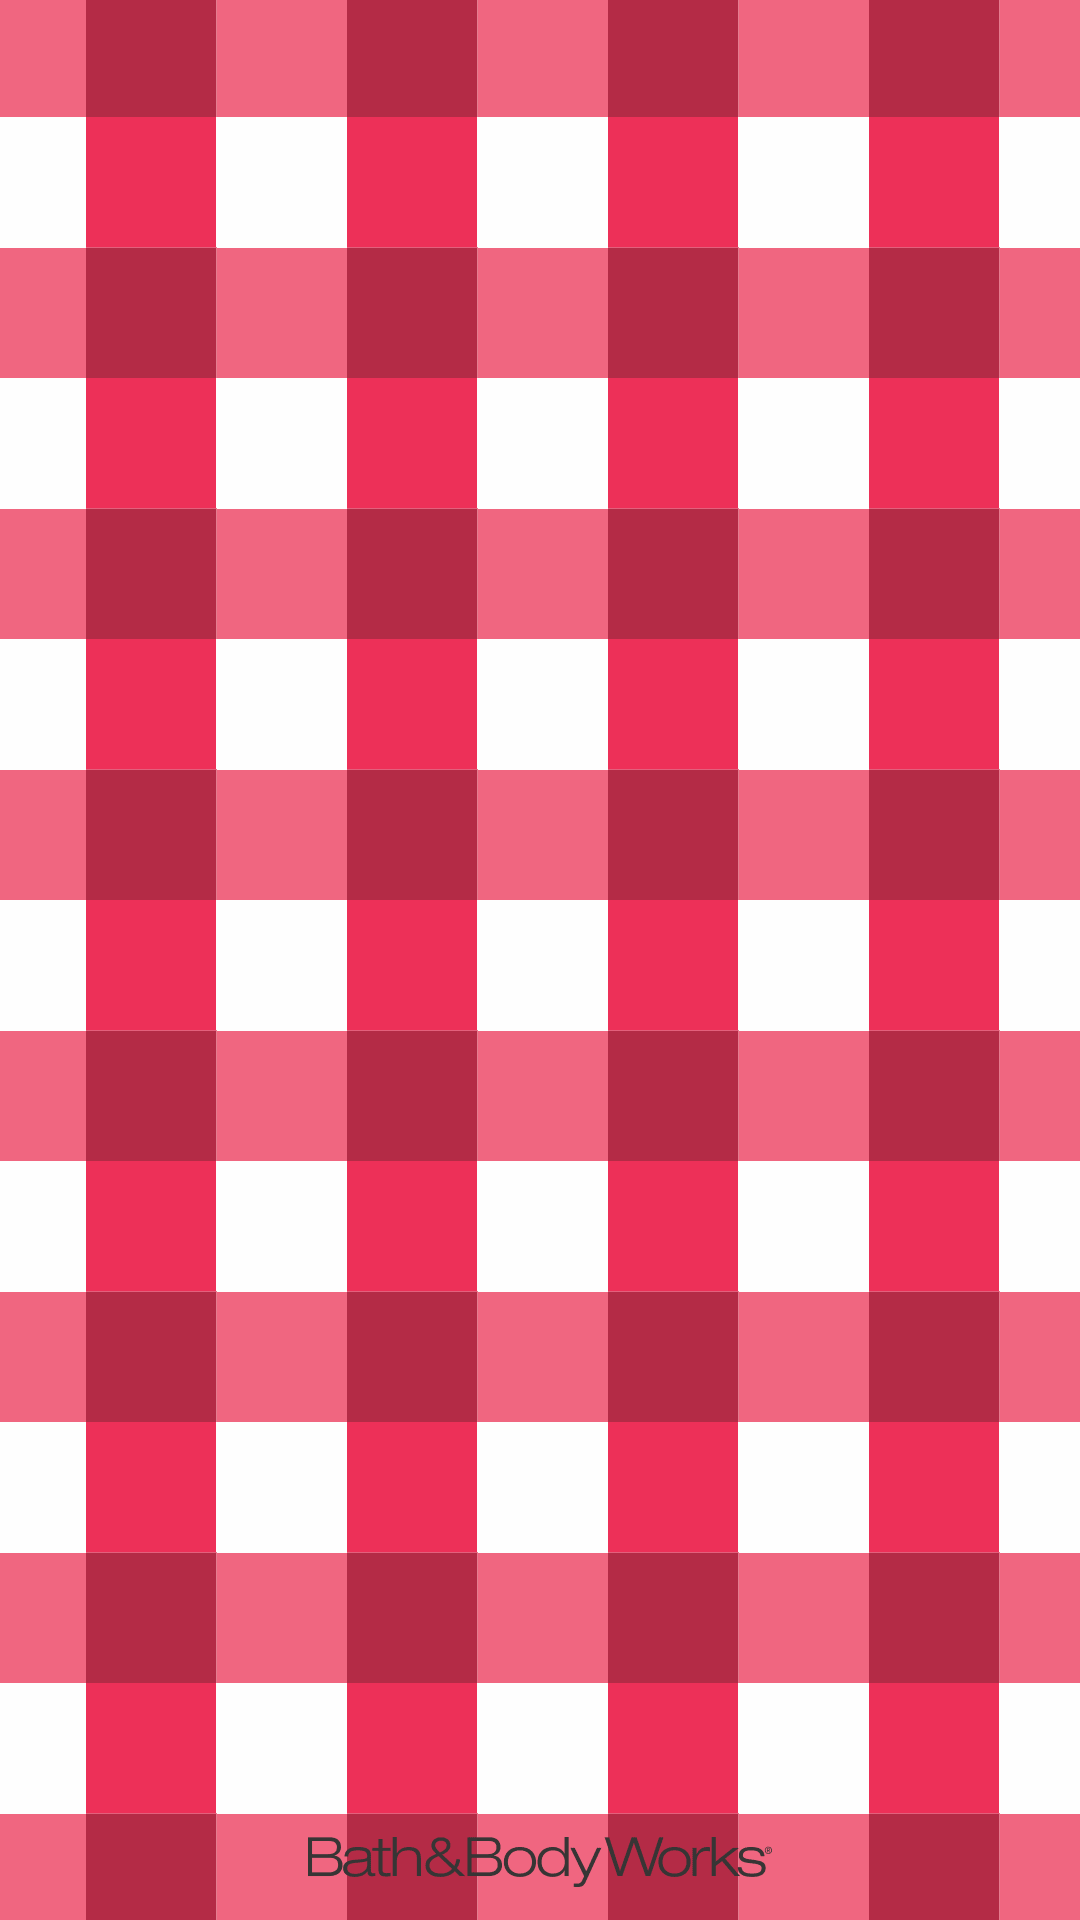 Bath Body Works Red Gingham Wallpaper Words Wallpaper Iphone Wallpaper Checker Wallpaper